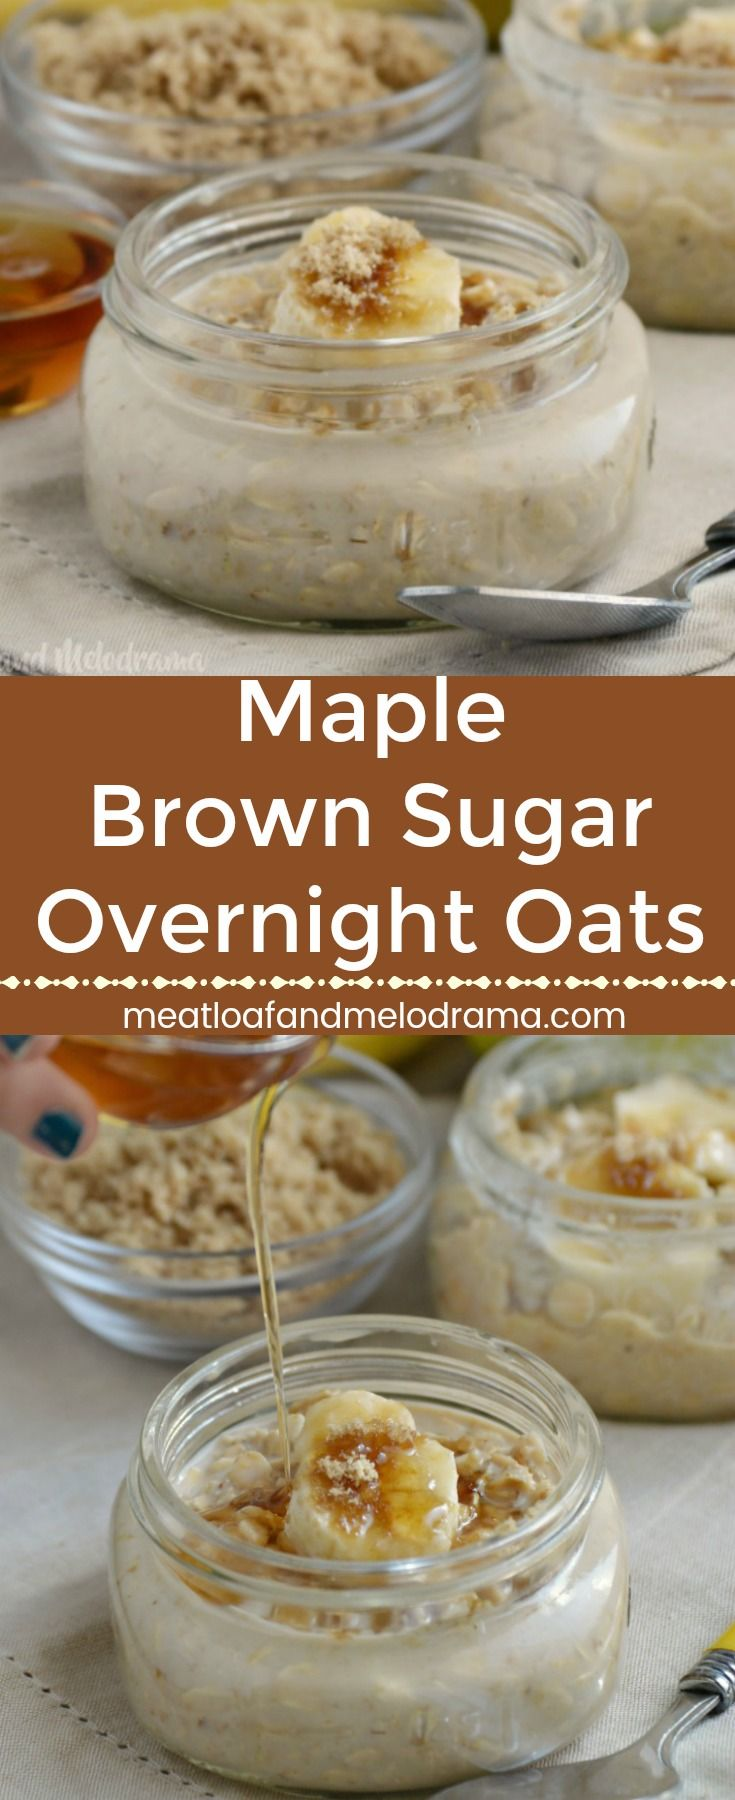 Maple Brown Sugar Overnight Oats - No cook oatmeal flavored with maple syrup and brown sugar and topped with bananas. An easy make ahead breakfast for busy fall mornings. from Meatloaf and Melodrama